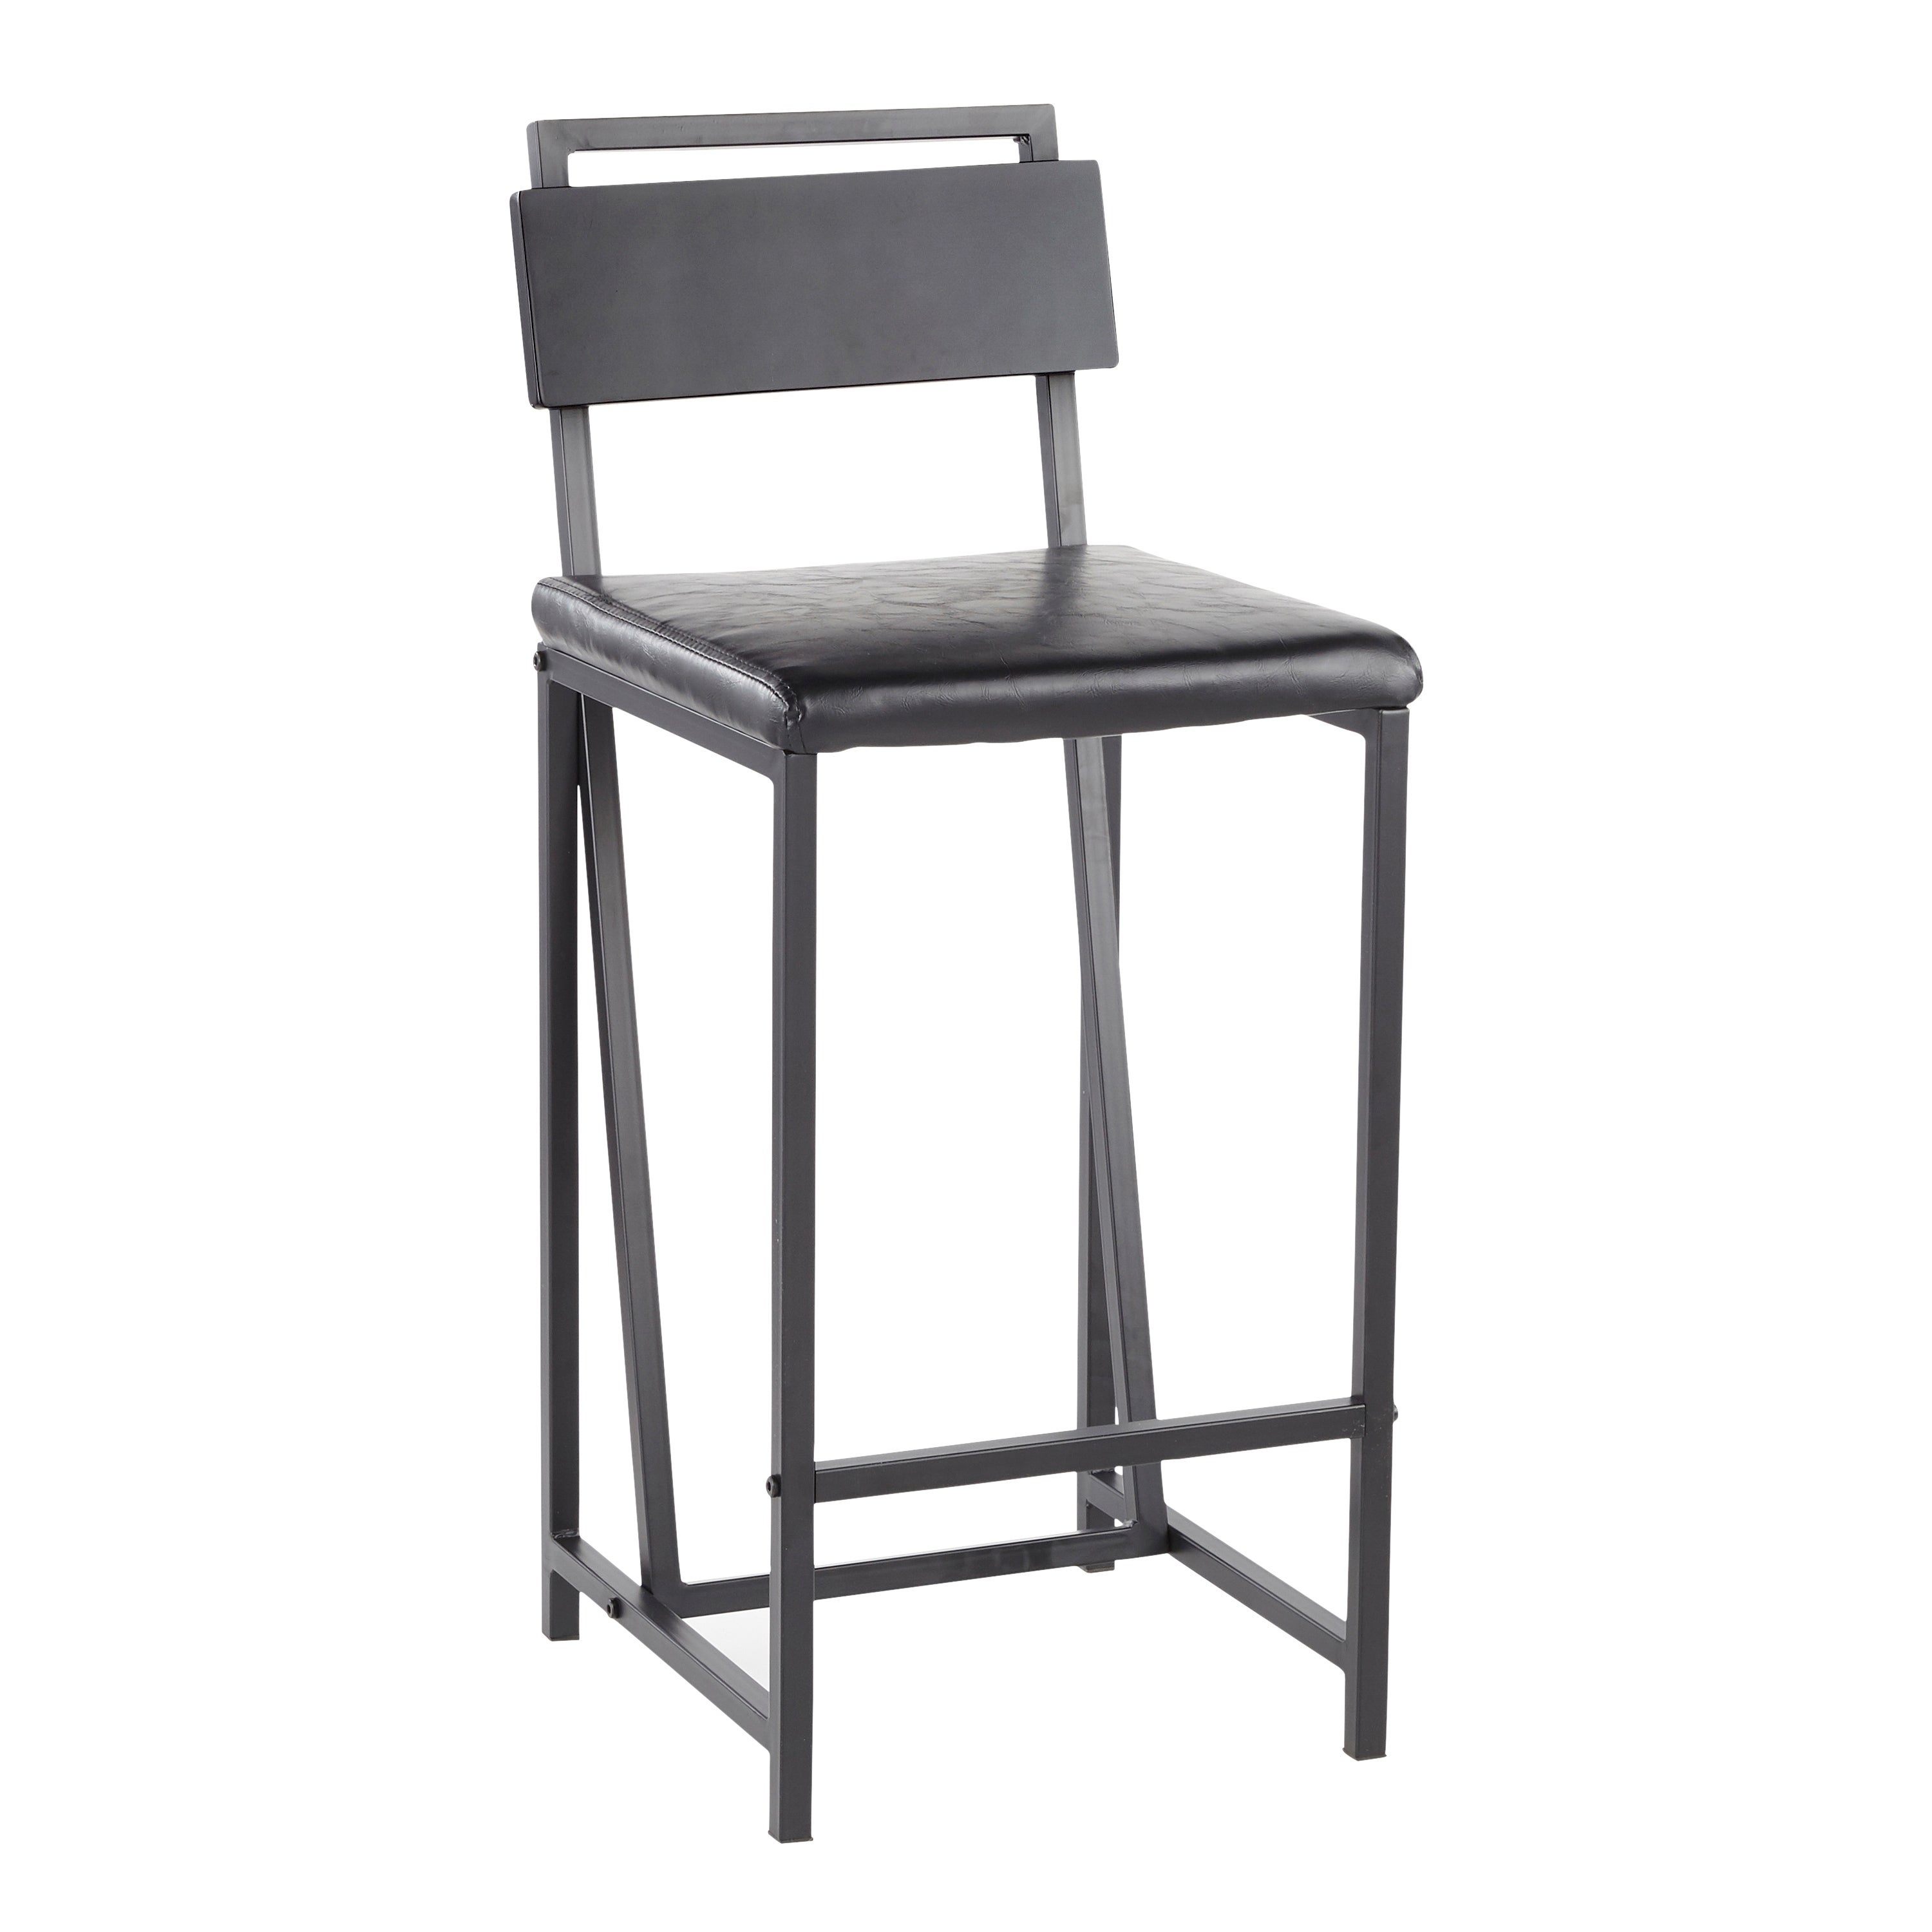 Pleasant Carbon Loft Gunn Industrial Black Wood Metal Faux Leather Counter Stool Set Of 2 Squirreltailoven Fun Painted Chair Ideas Images Squirreltailovenorg